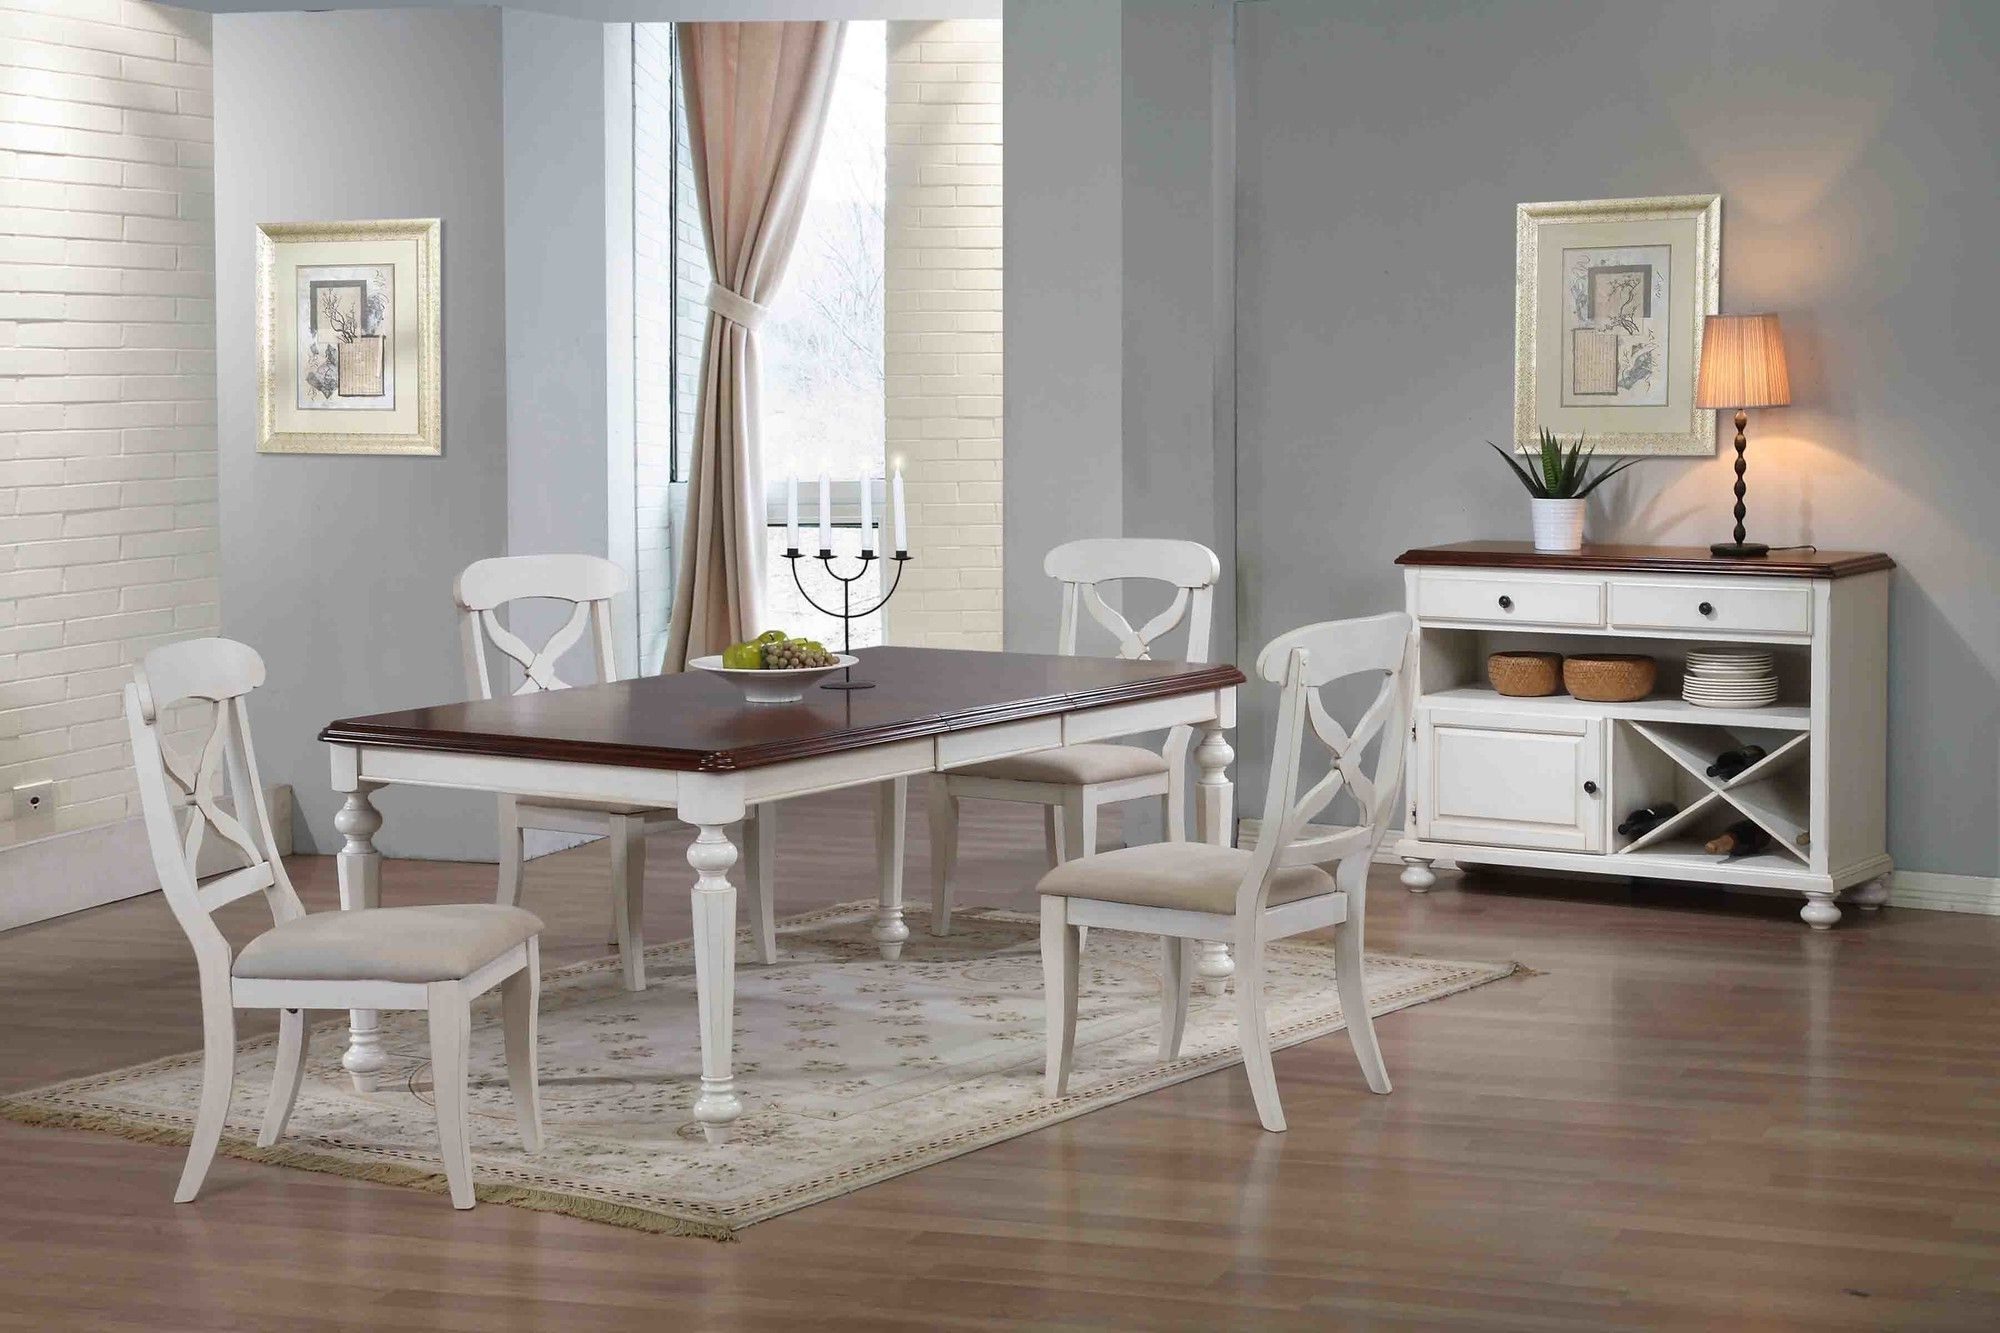 Lockwood Butterfly Leaf 6 Piece Dining Set (View 9 of 25)